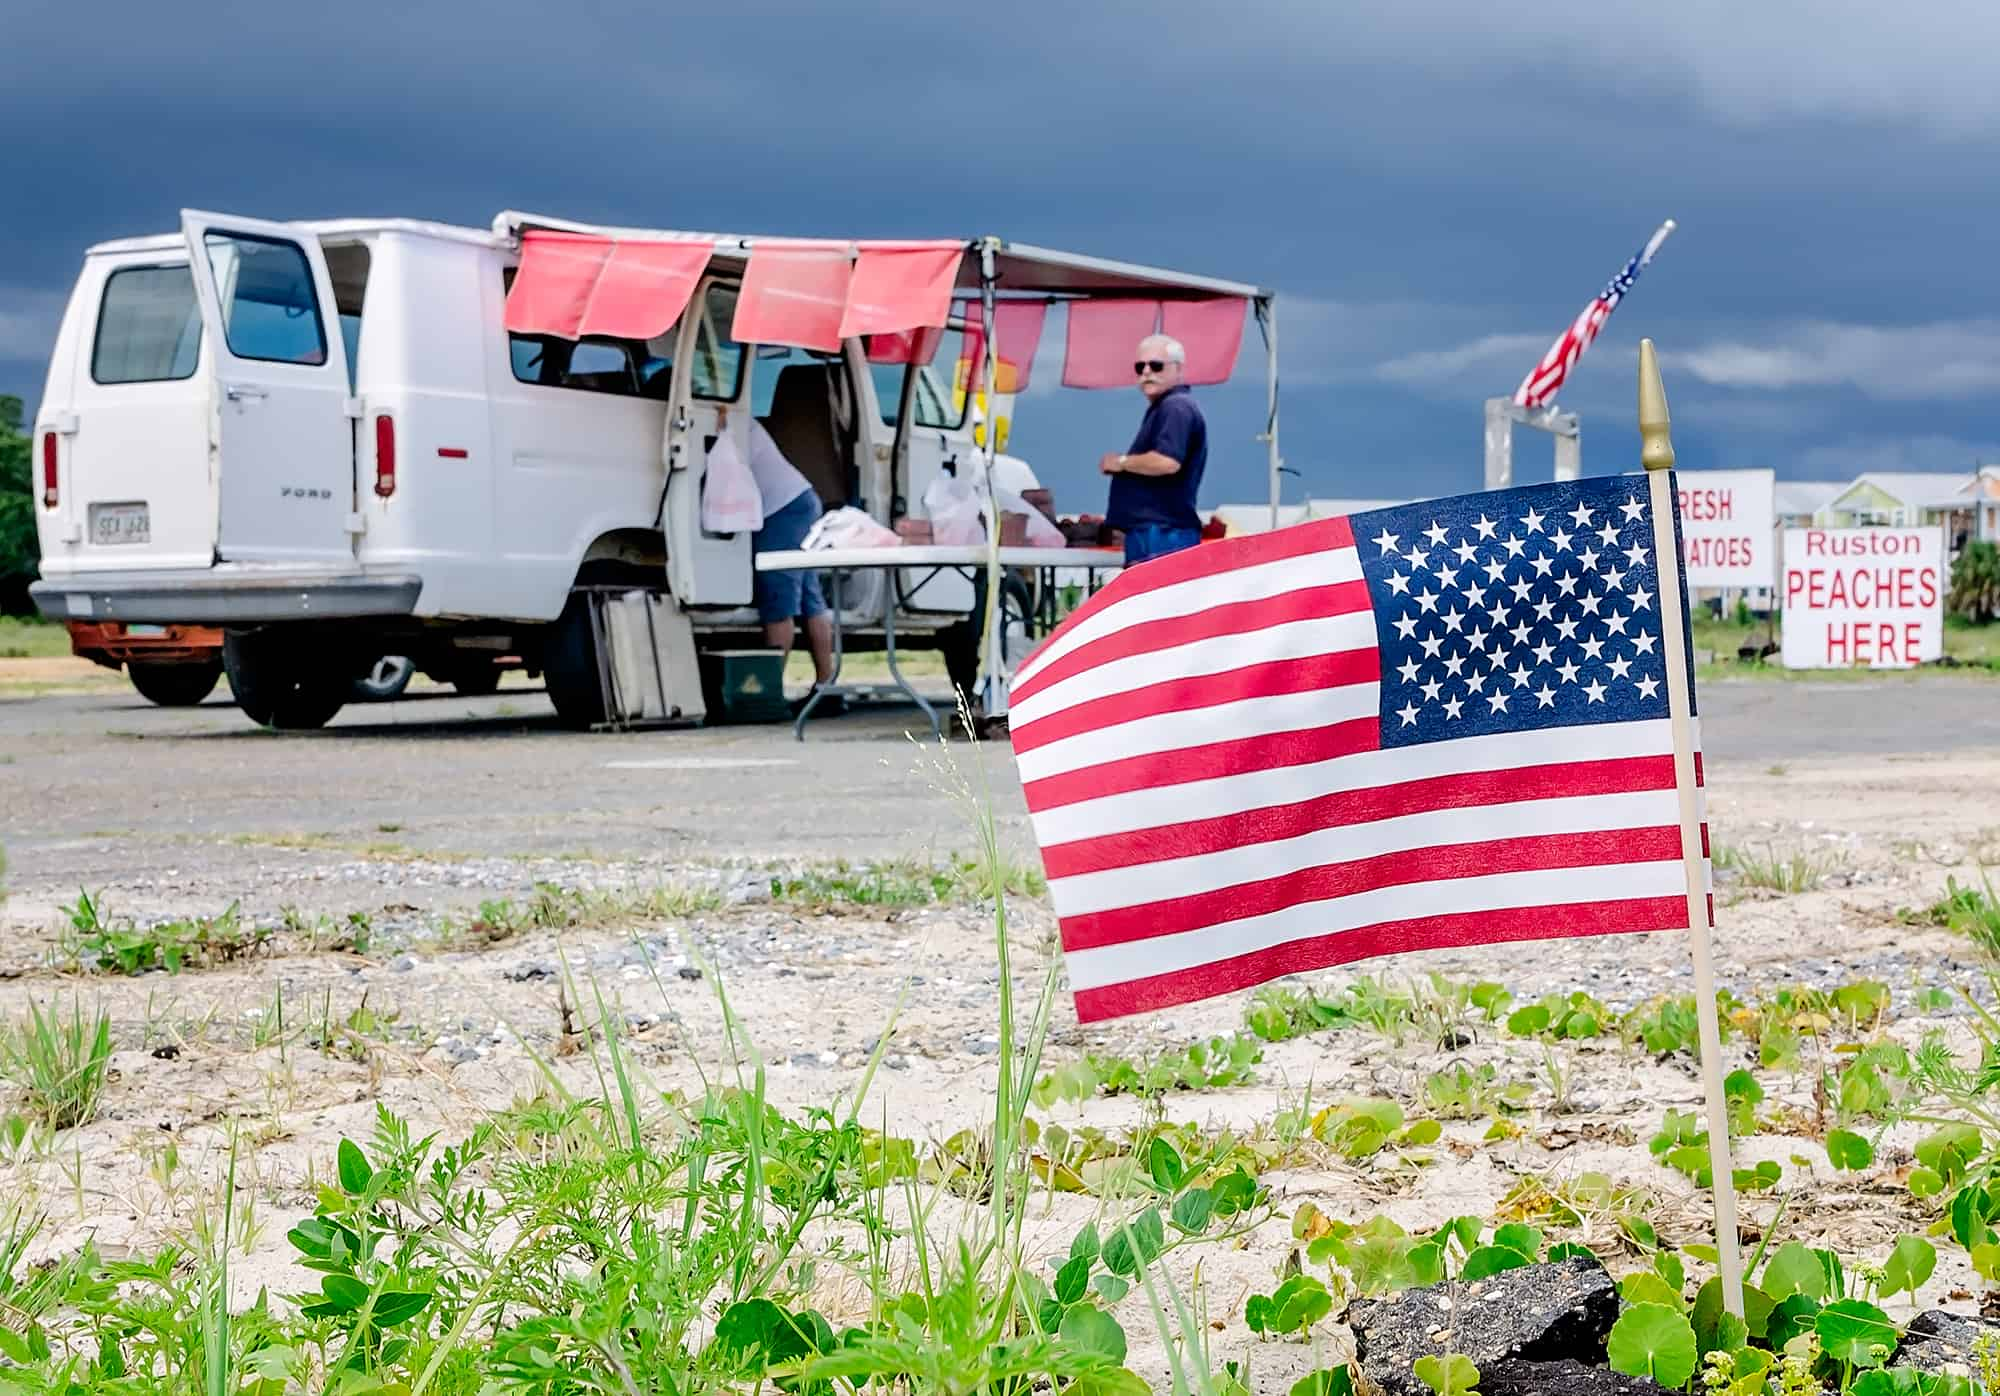 American flags fly at roadside fruit stand in Pass Christian Mississippi